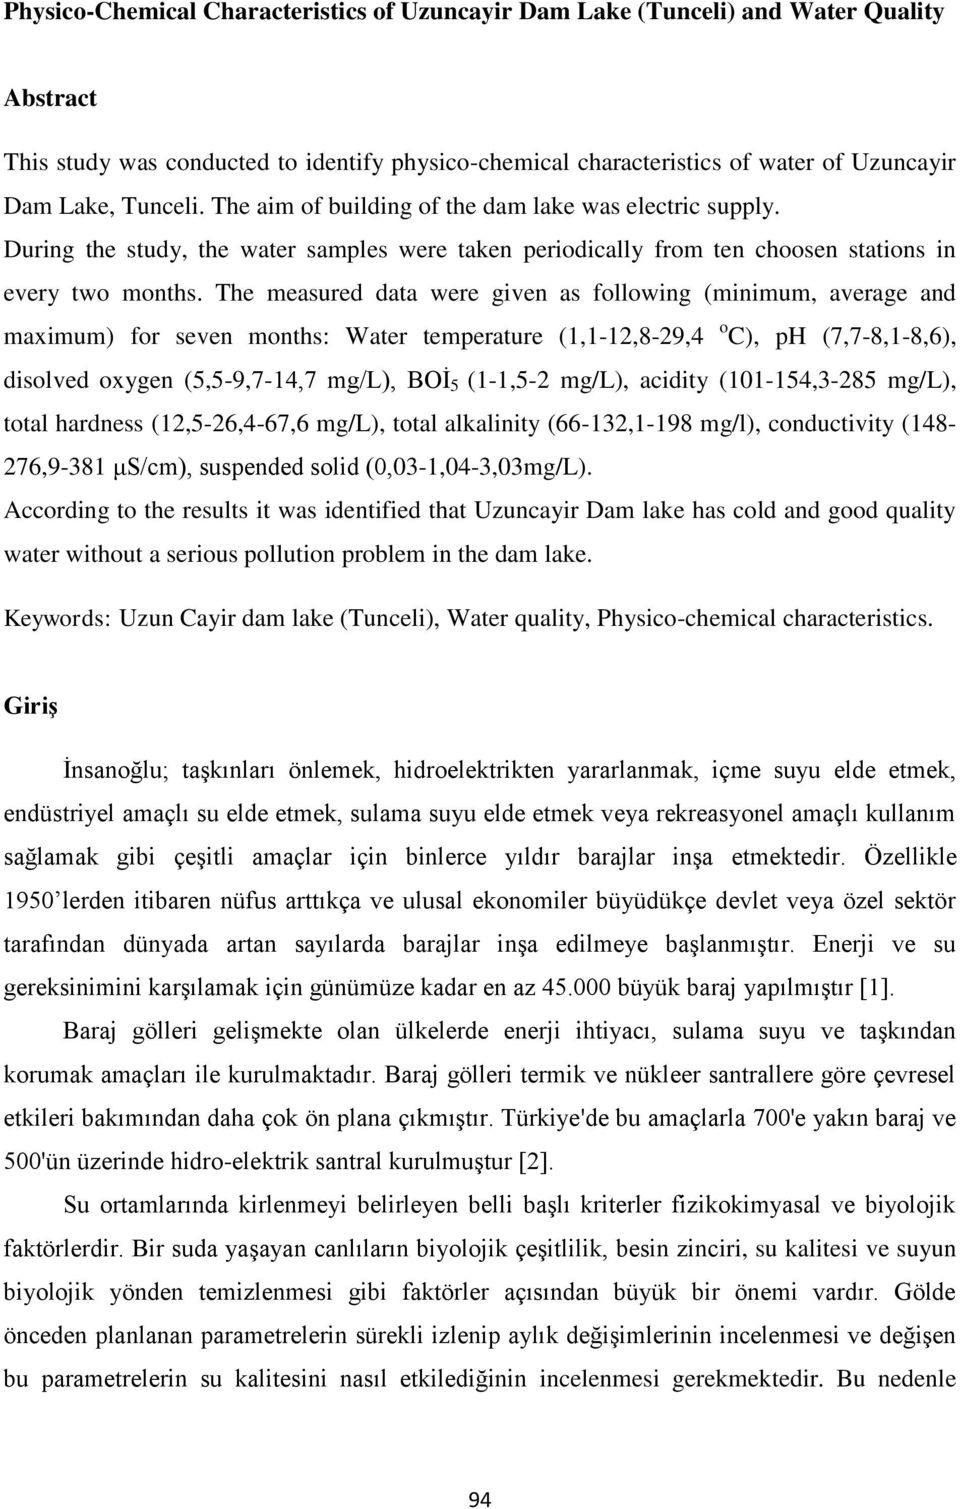 The measured data were given as following (minimum, average and maximum) for seven months: Water temperature (1,1-12,8-29,4 o C), ph (7,7-8,1-8,6), disolved oxygen (5,5-9,7-14,7 mg/l), BOİ 5 (1-1,5-2